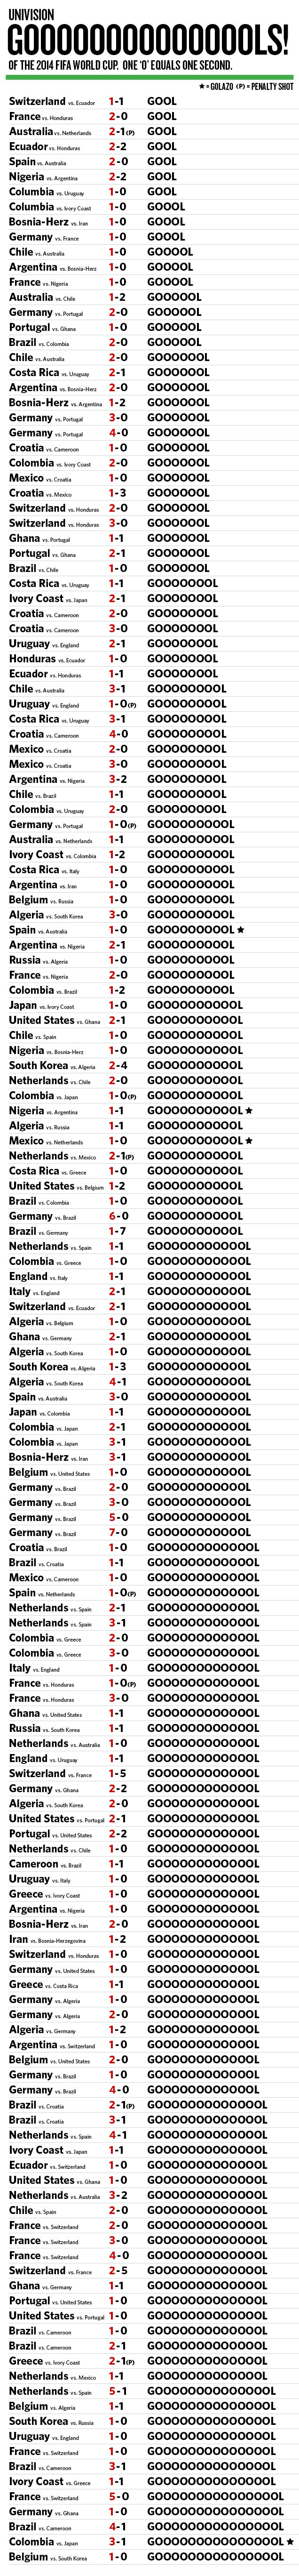 Every Univision ¡GOOOL! Of The World Cup, Ranked By Length